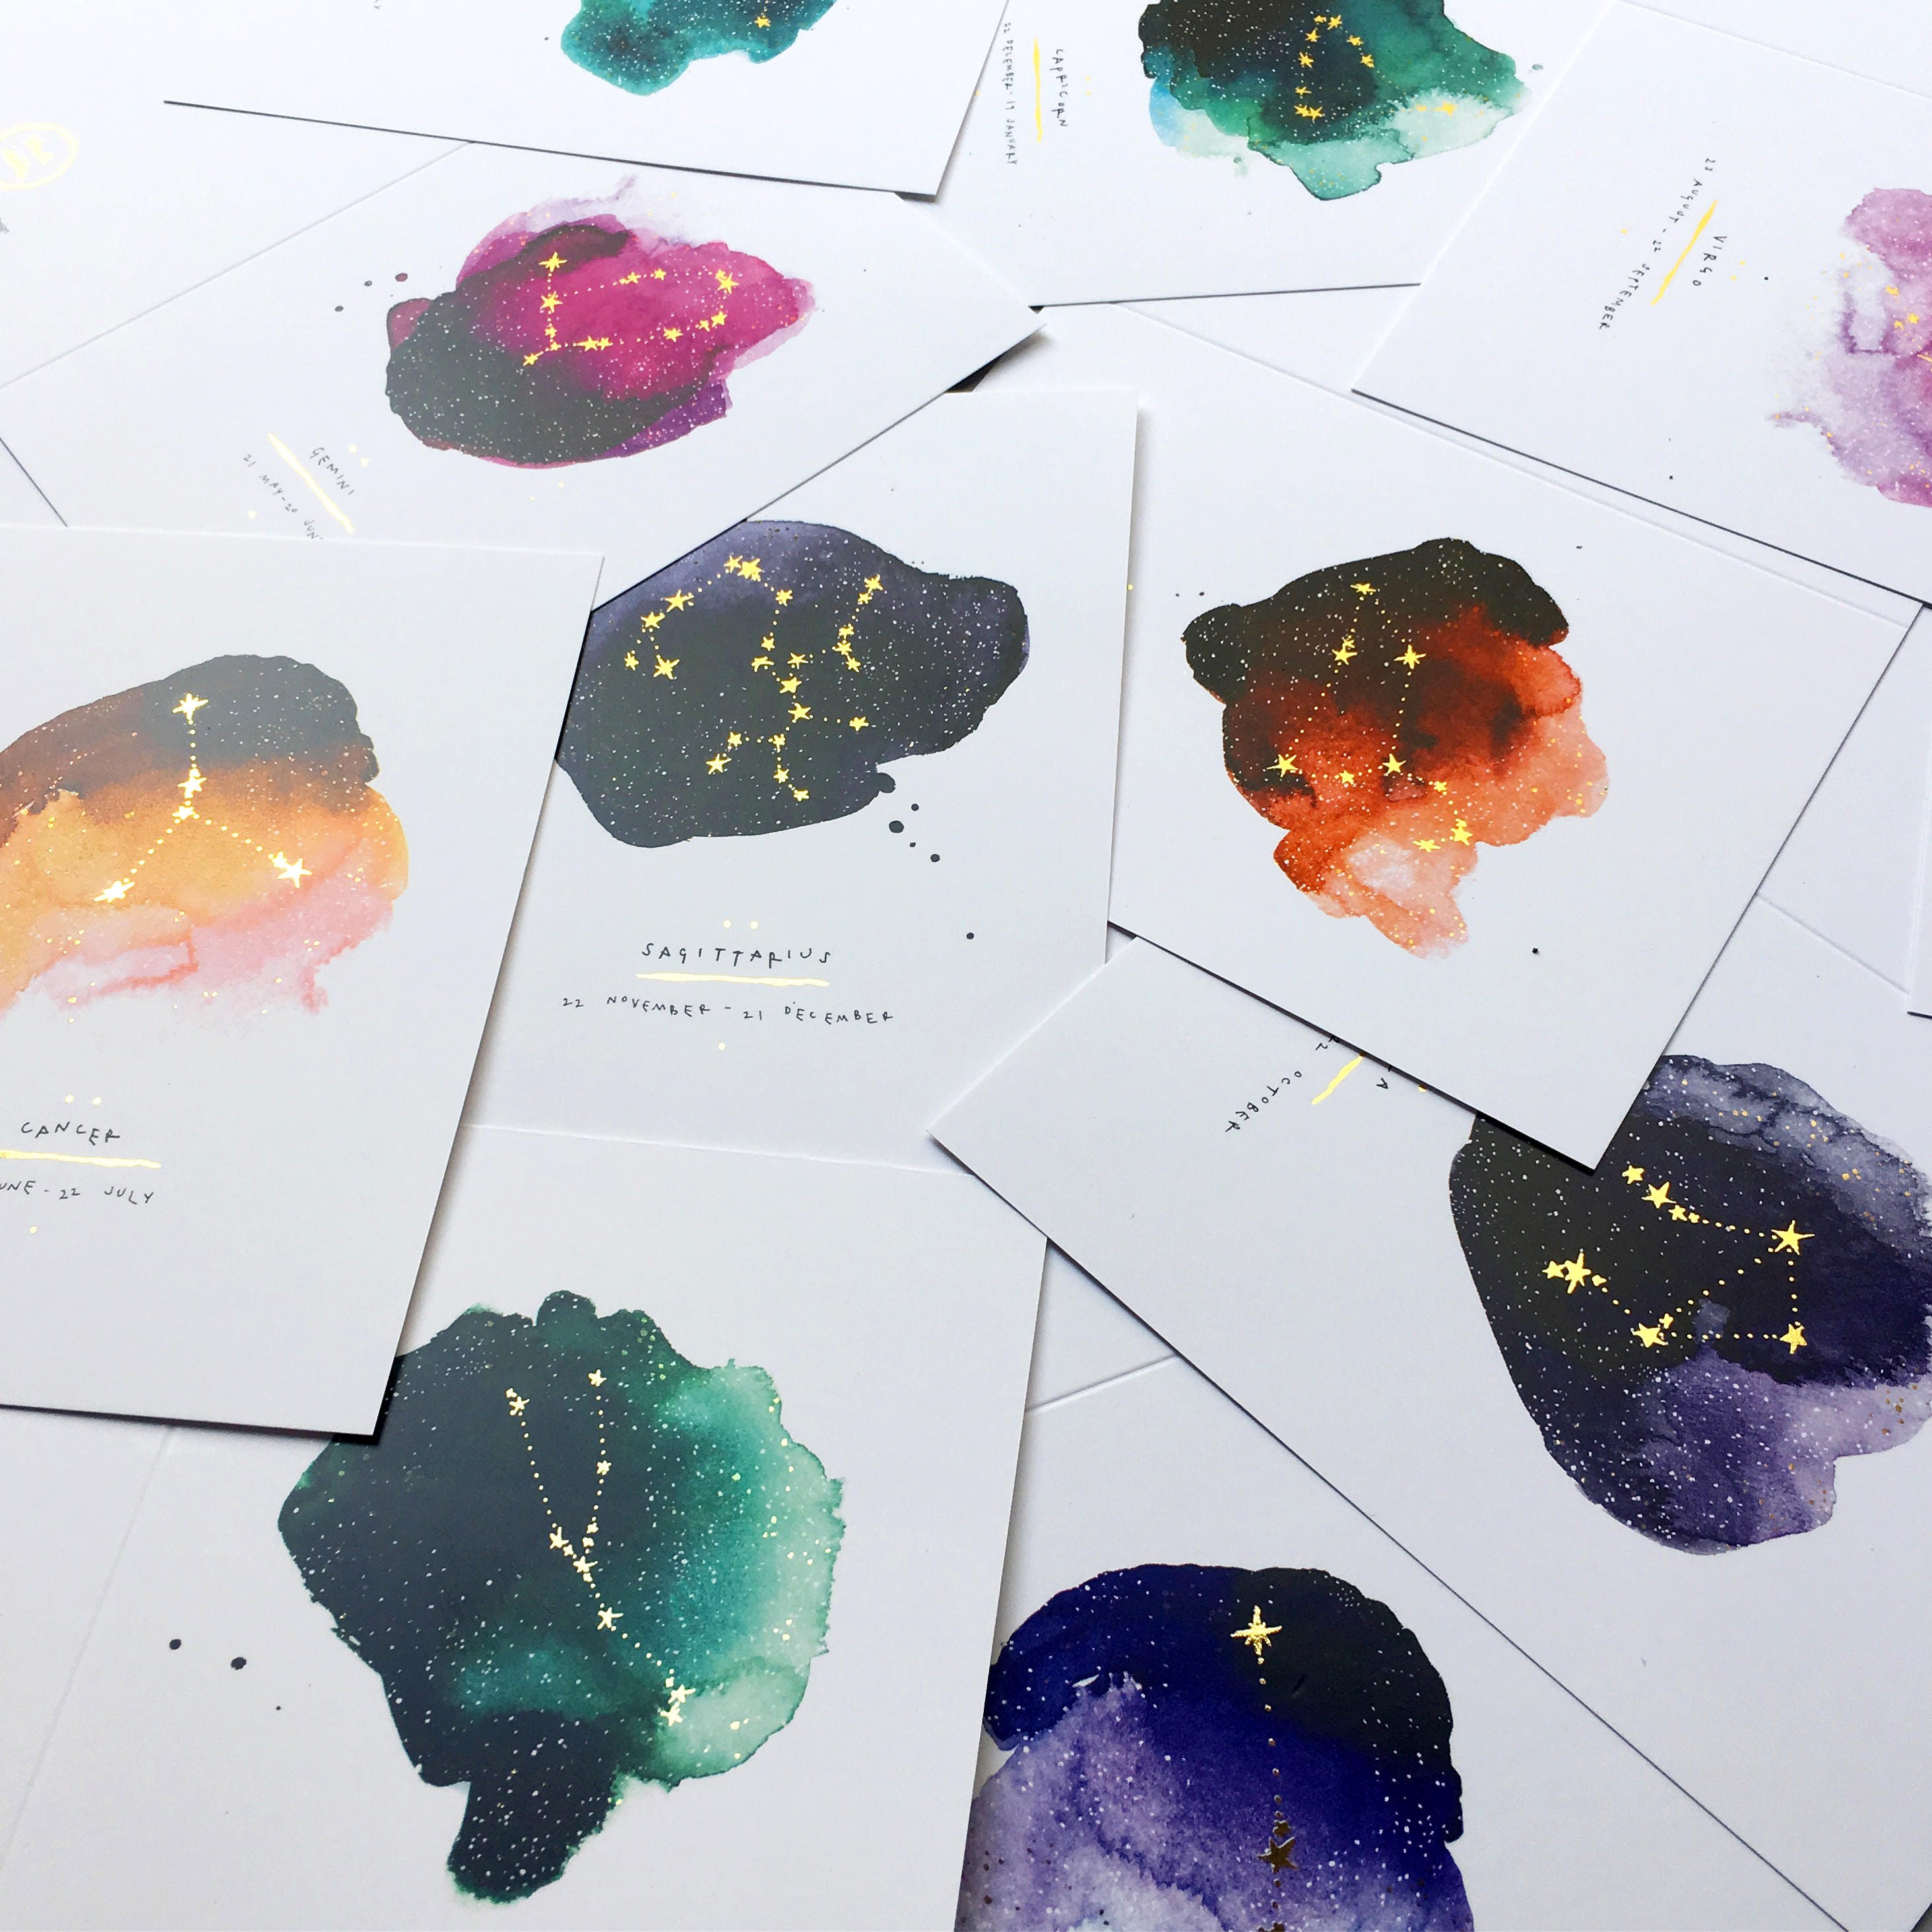 Inky star sign greeting card collection blank inside inky star sign greeting card collection blank inside beautifully illustrated eco friendly stationery kristyandbryce Images